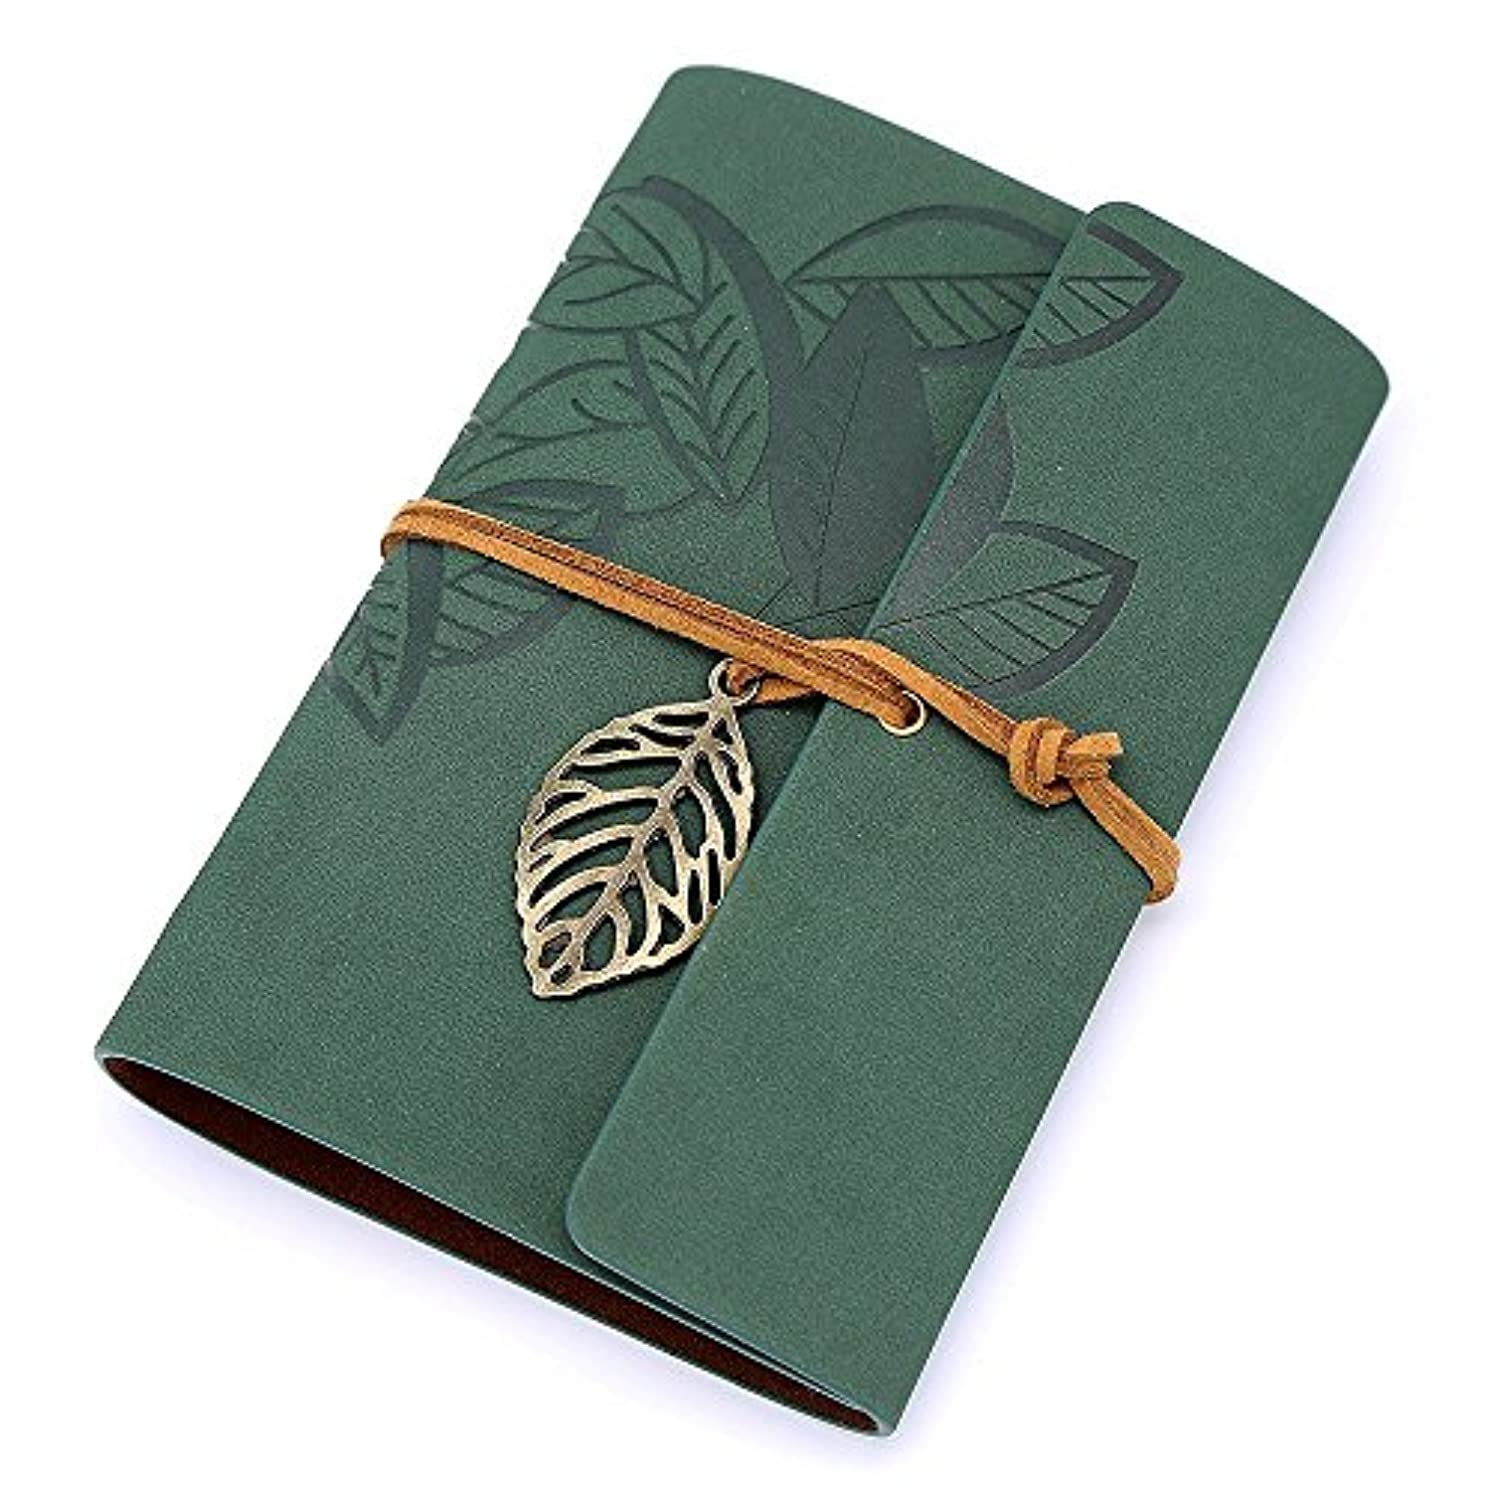 Biowow PU Leather Cover Loose Leaf Blank Vintage Dark Green Notebook Journal Diary